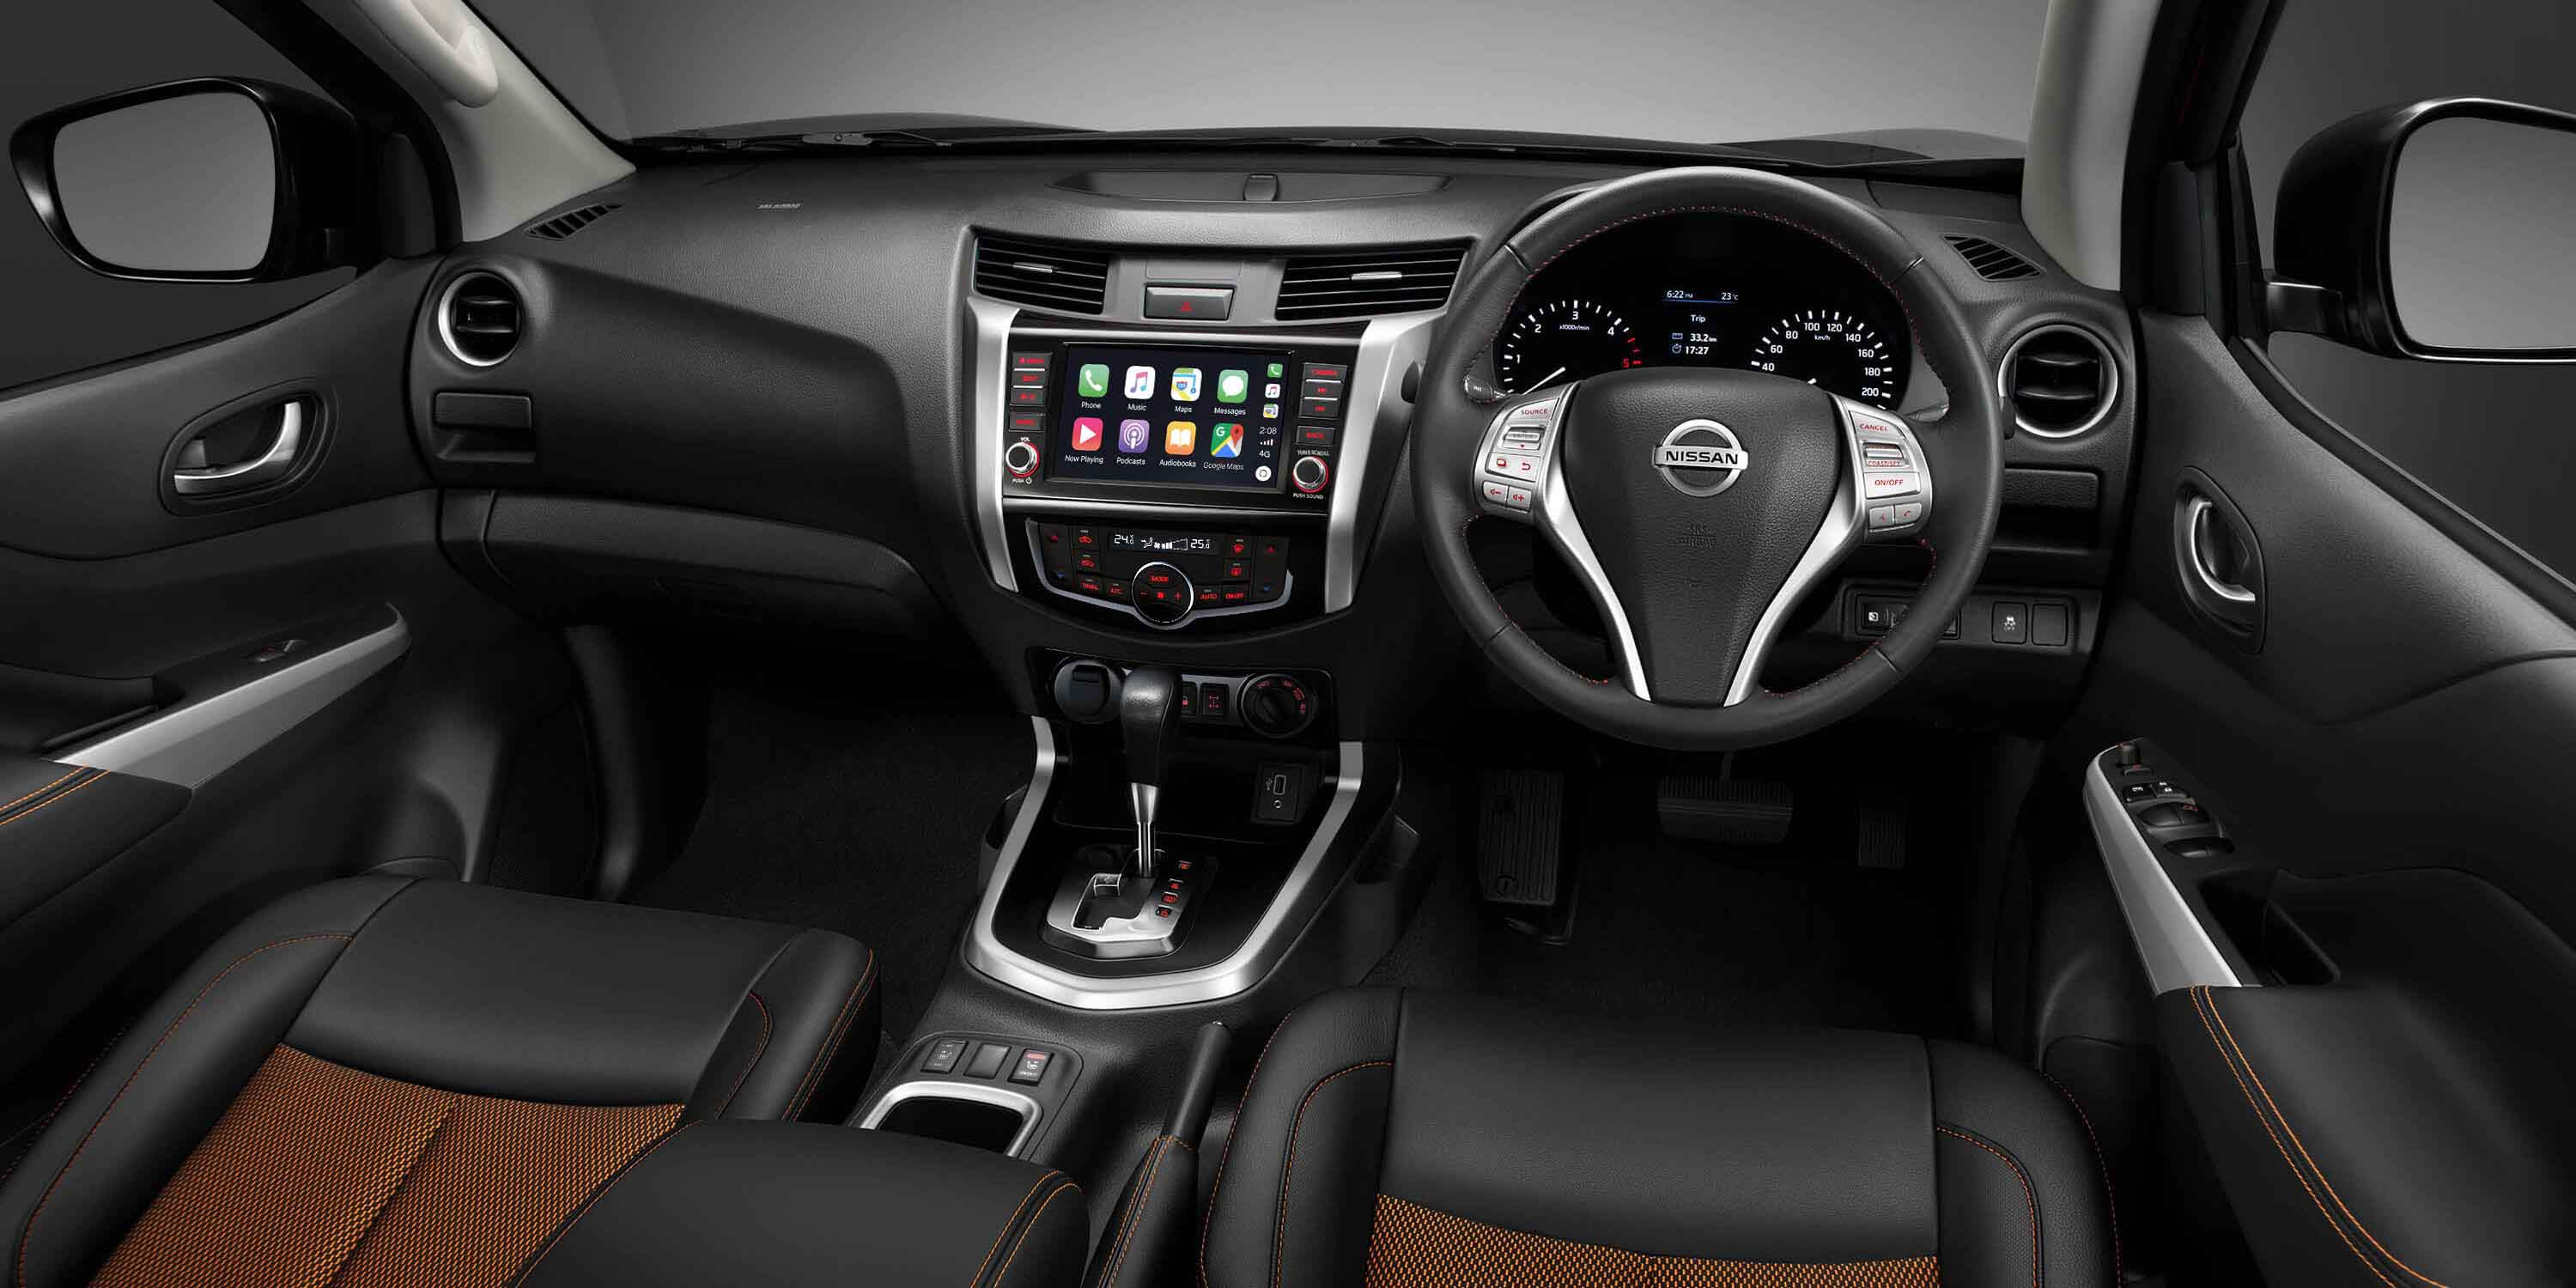 Nissan Navara Ute - Powerful made clever | Nissan Australia